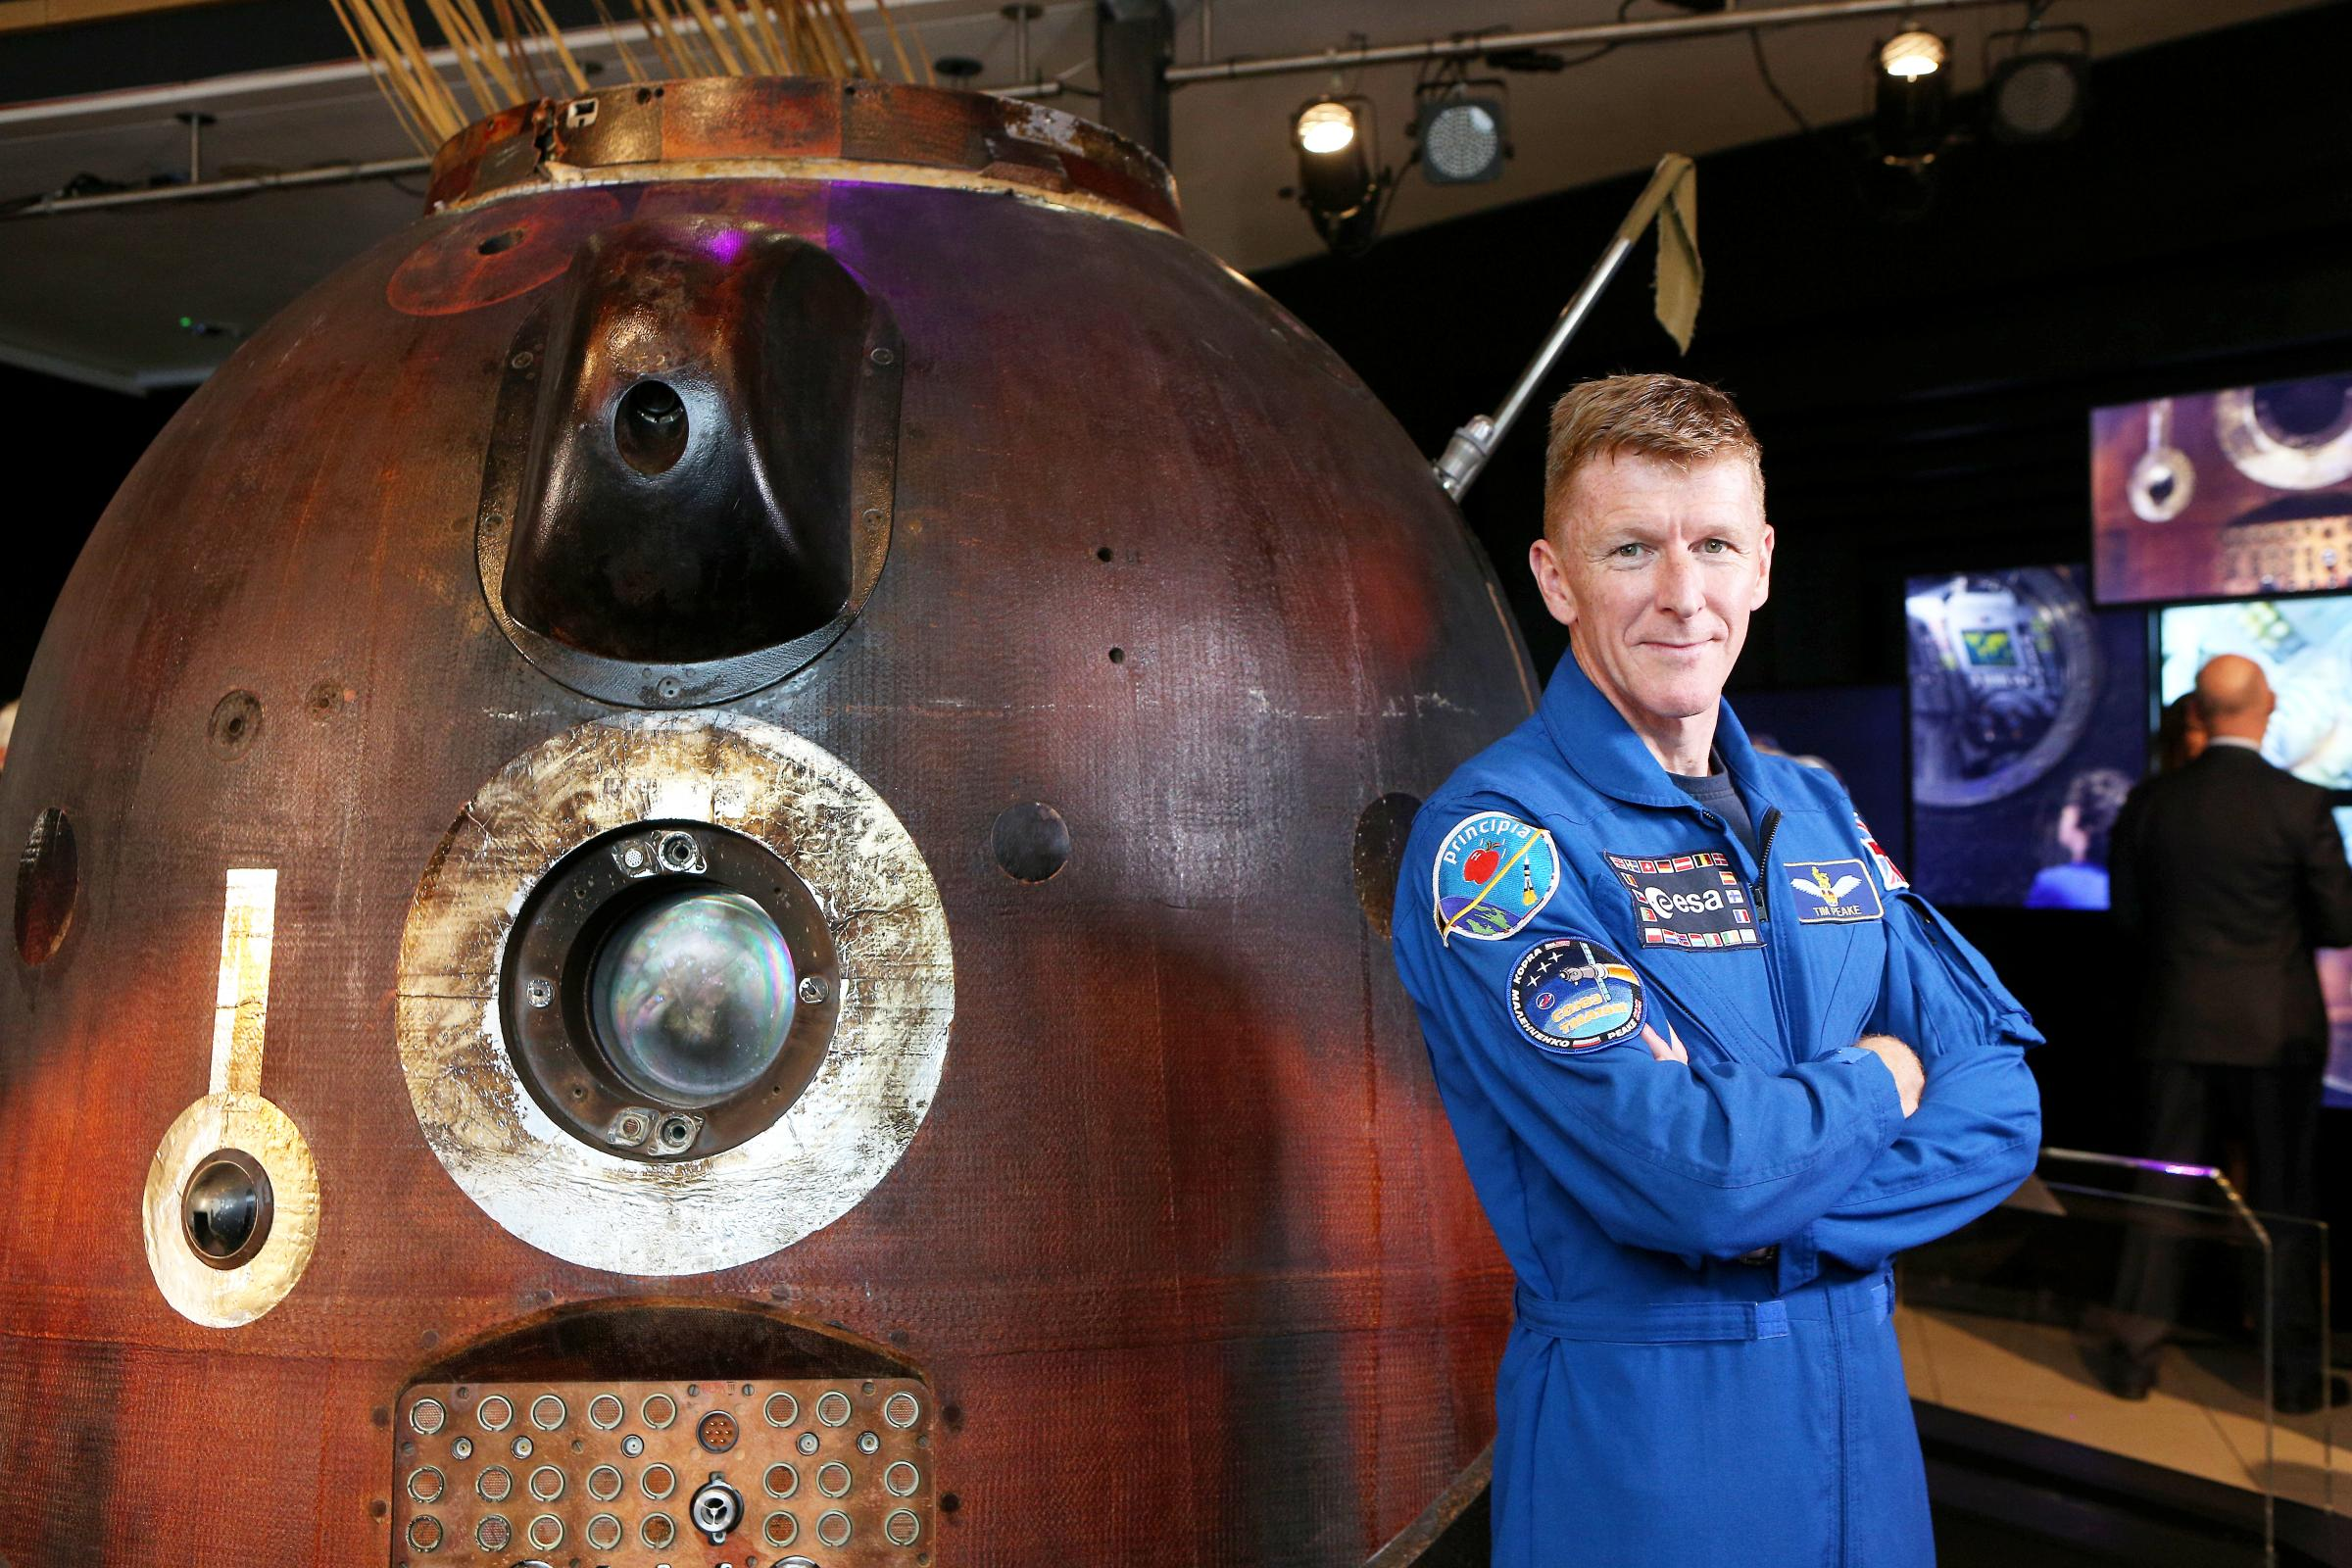 Tim Peake spaceship attracts 110,000 visits to National Science and Media Museum, Bradford